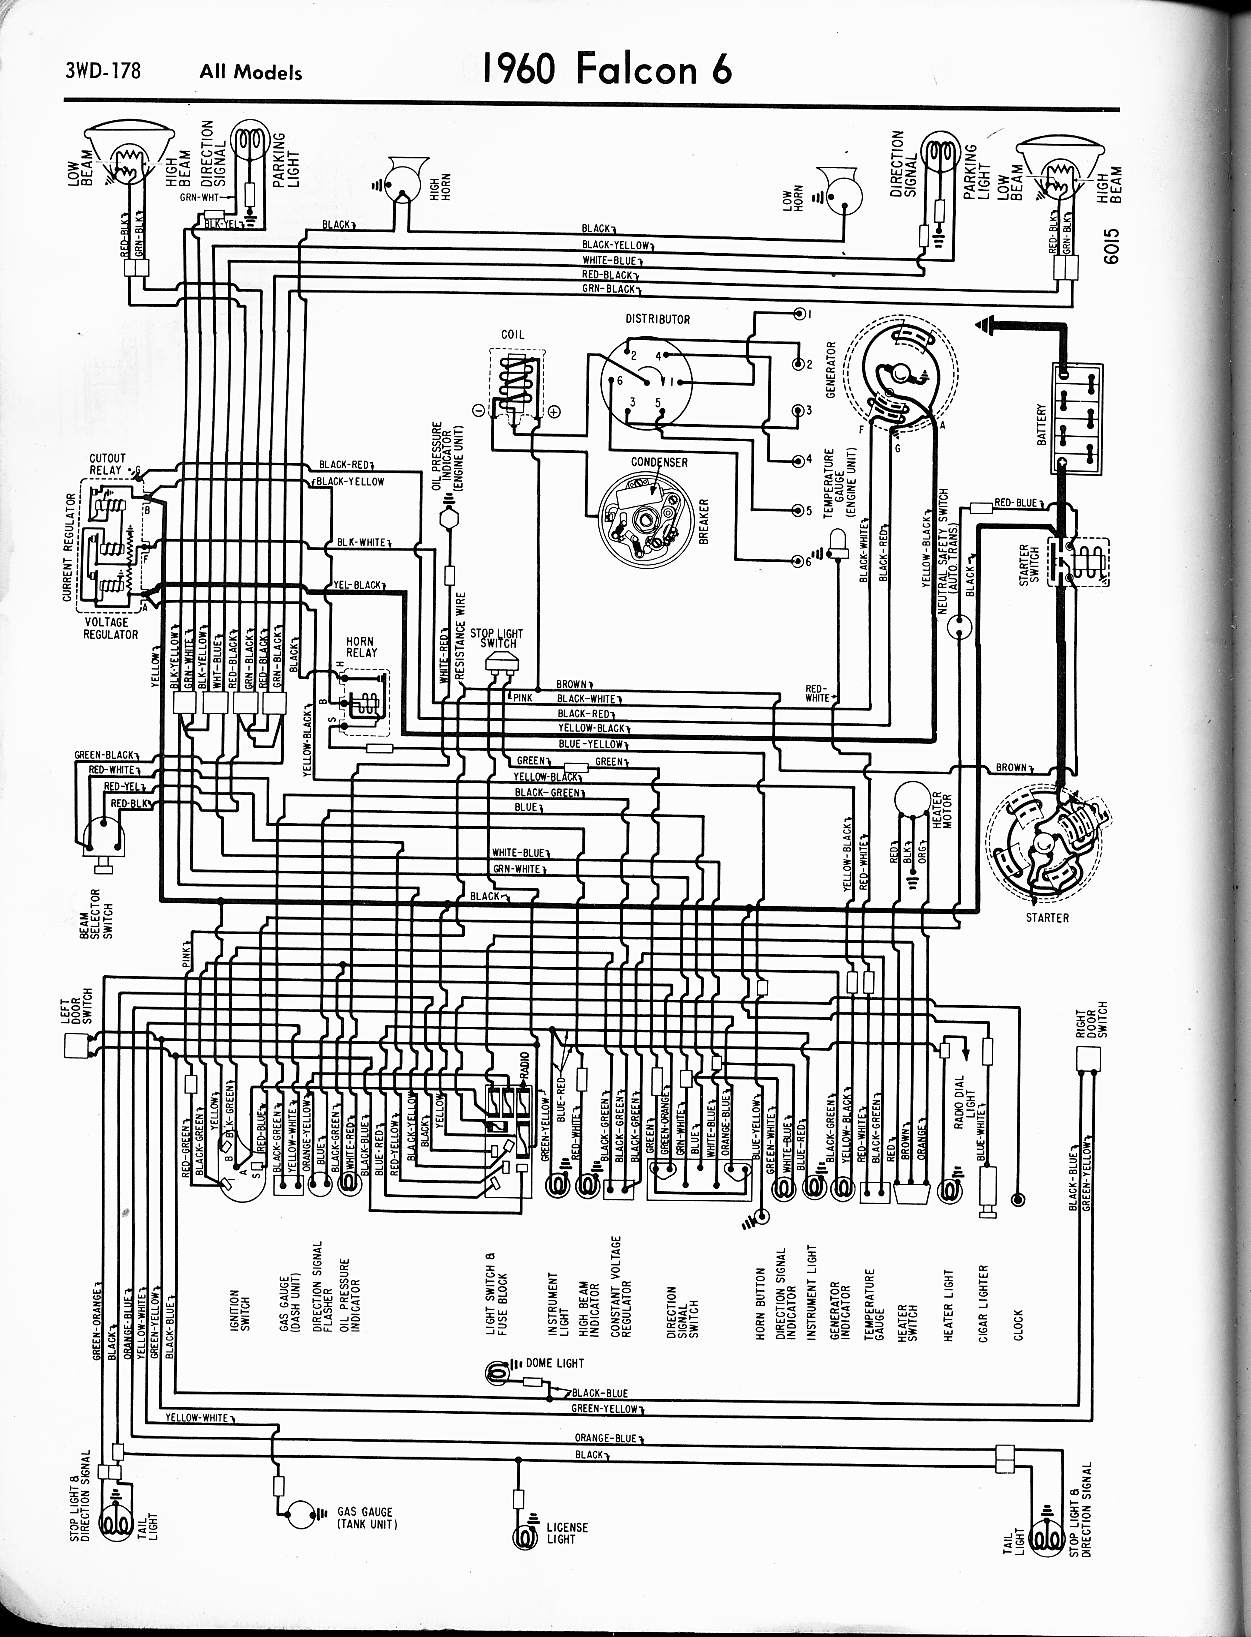 Electric Meter Wiring Diagram For Cluster Simple Guide About Ford F600 Truck Diagrams 1960 F 100 Turn Signal Enthusiasts Forums